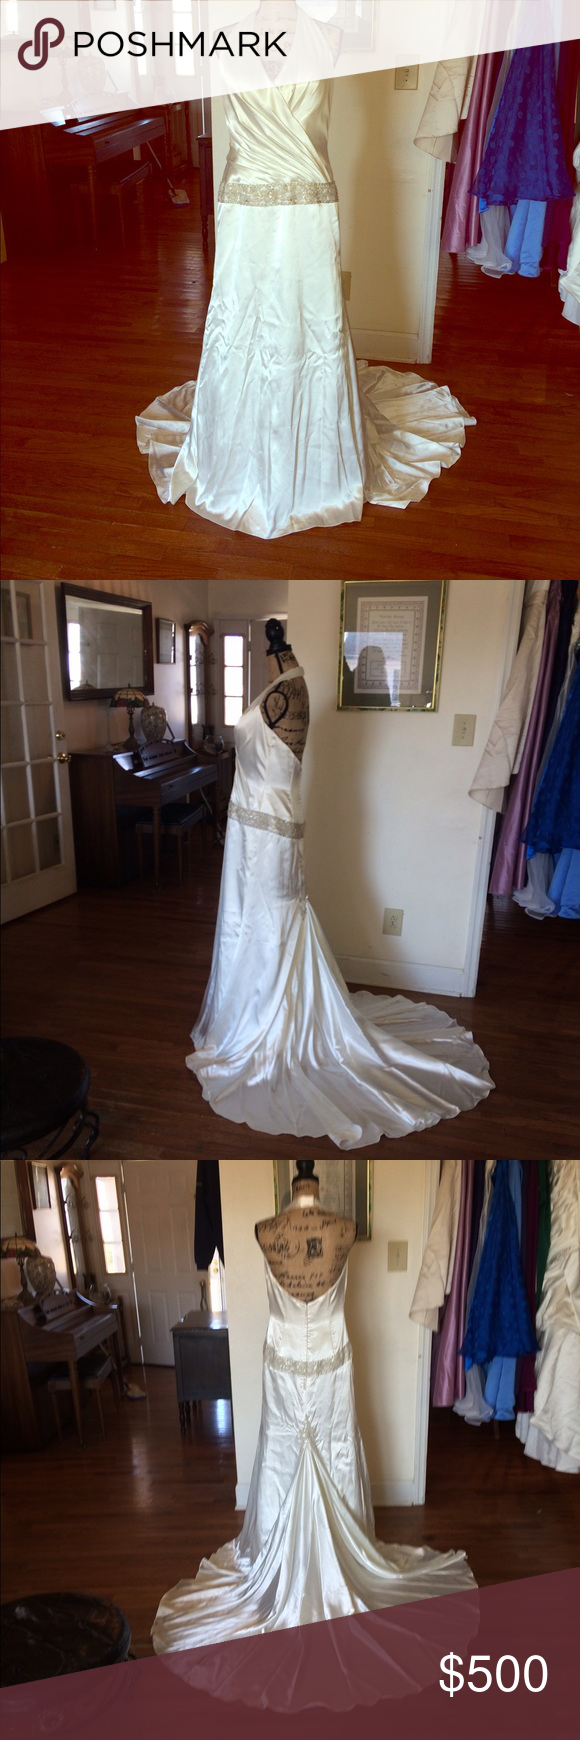 Beautiful wedding gown davids bridal dresses dress skirt and boutique